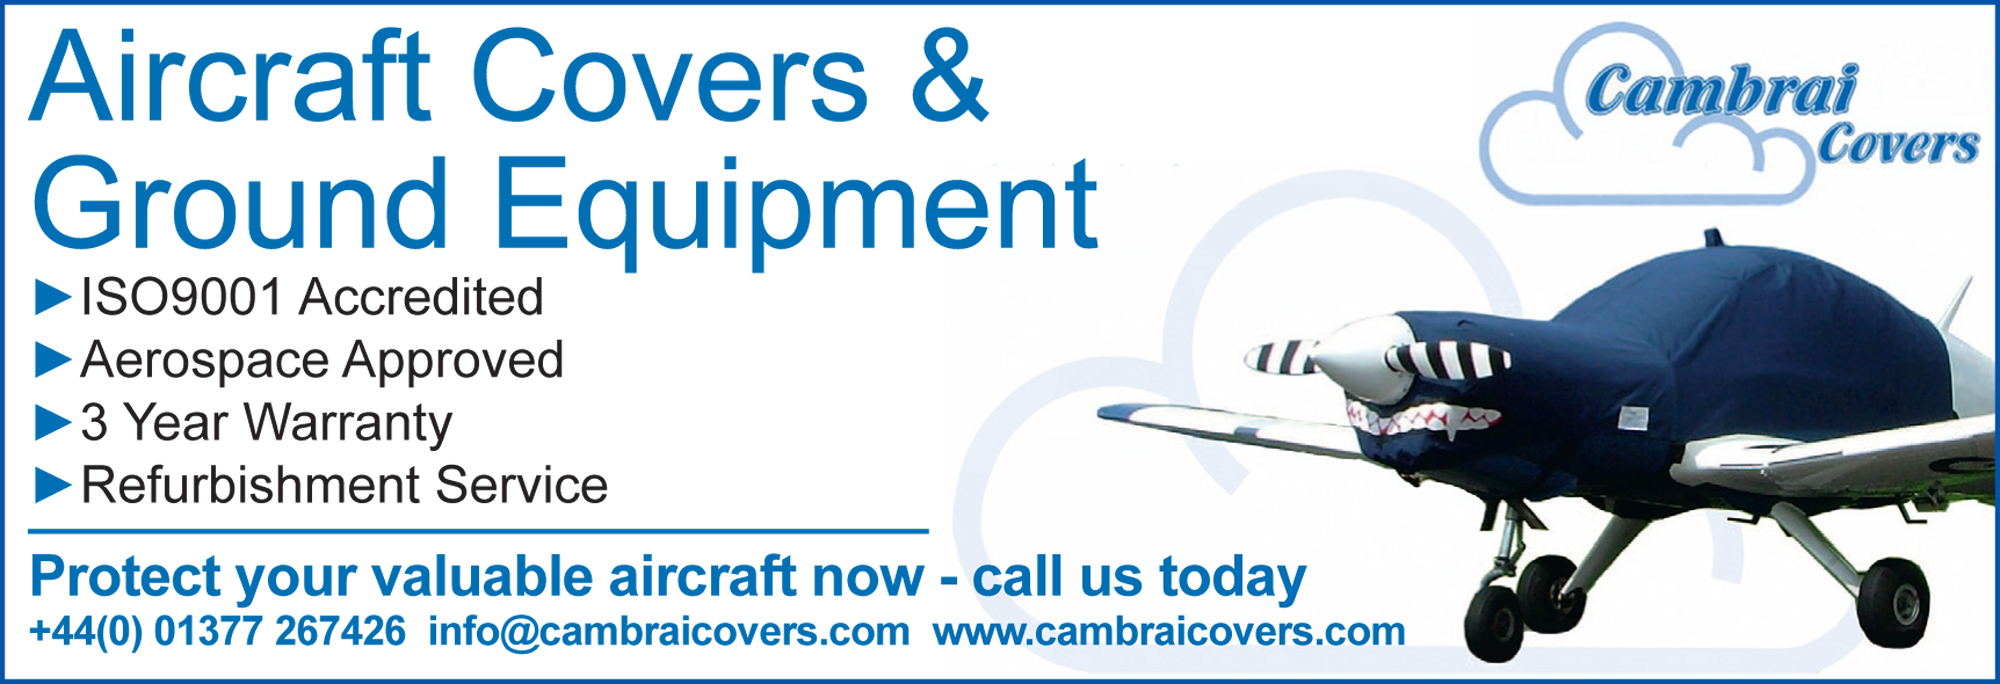 Cambrai aircraft covers